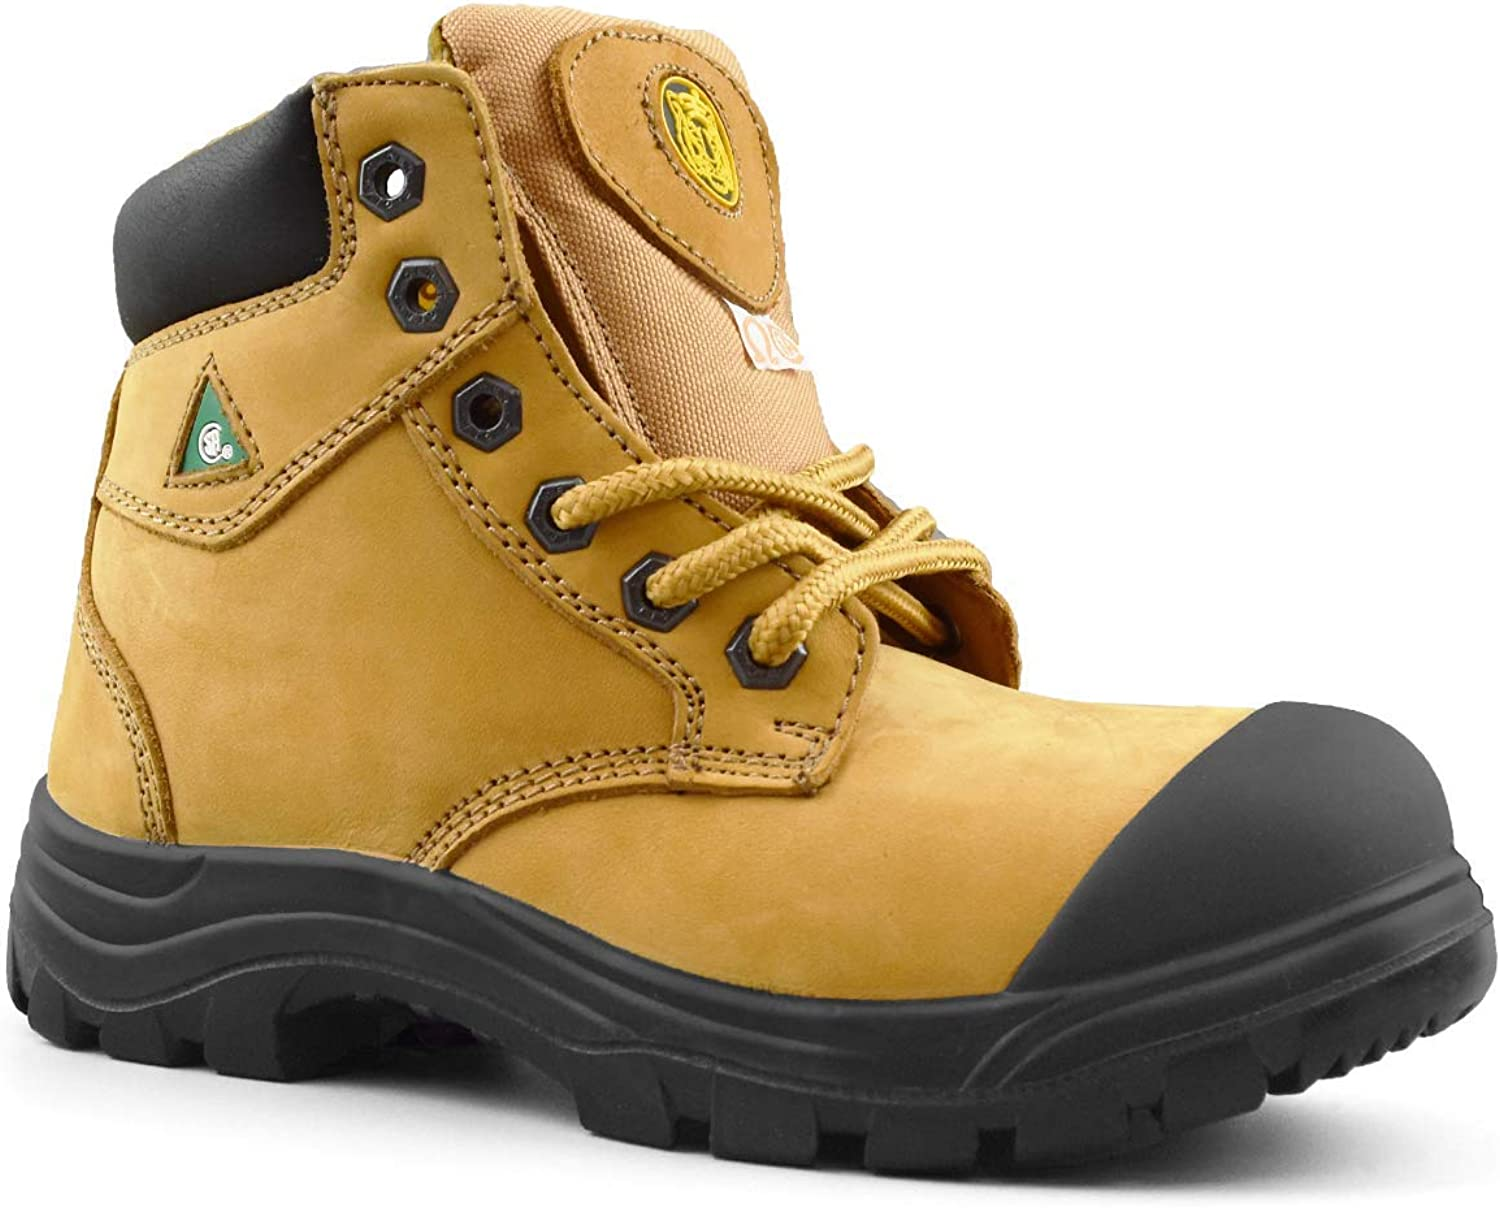 Tiger Safety Women's Steel Work Mesa Mall Portland Mall Toe Boots